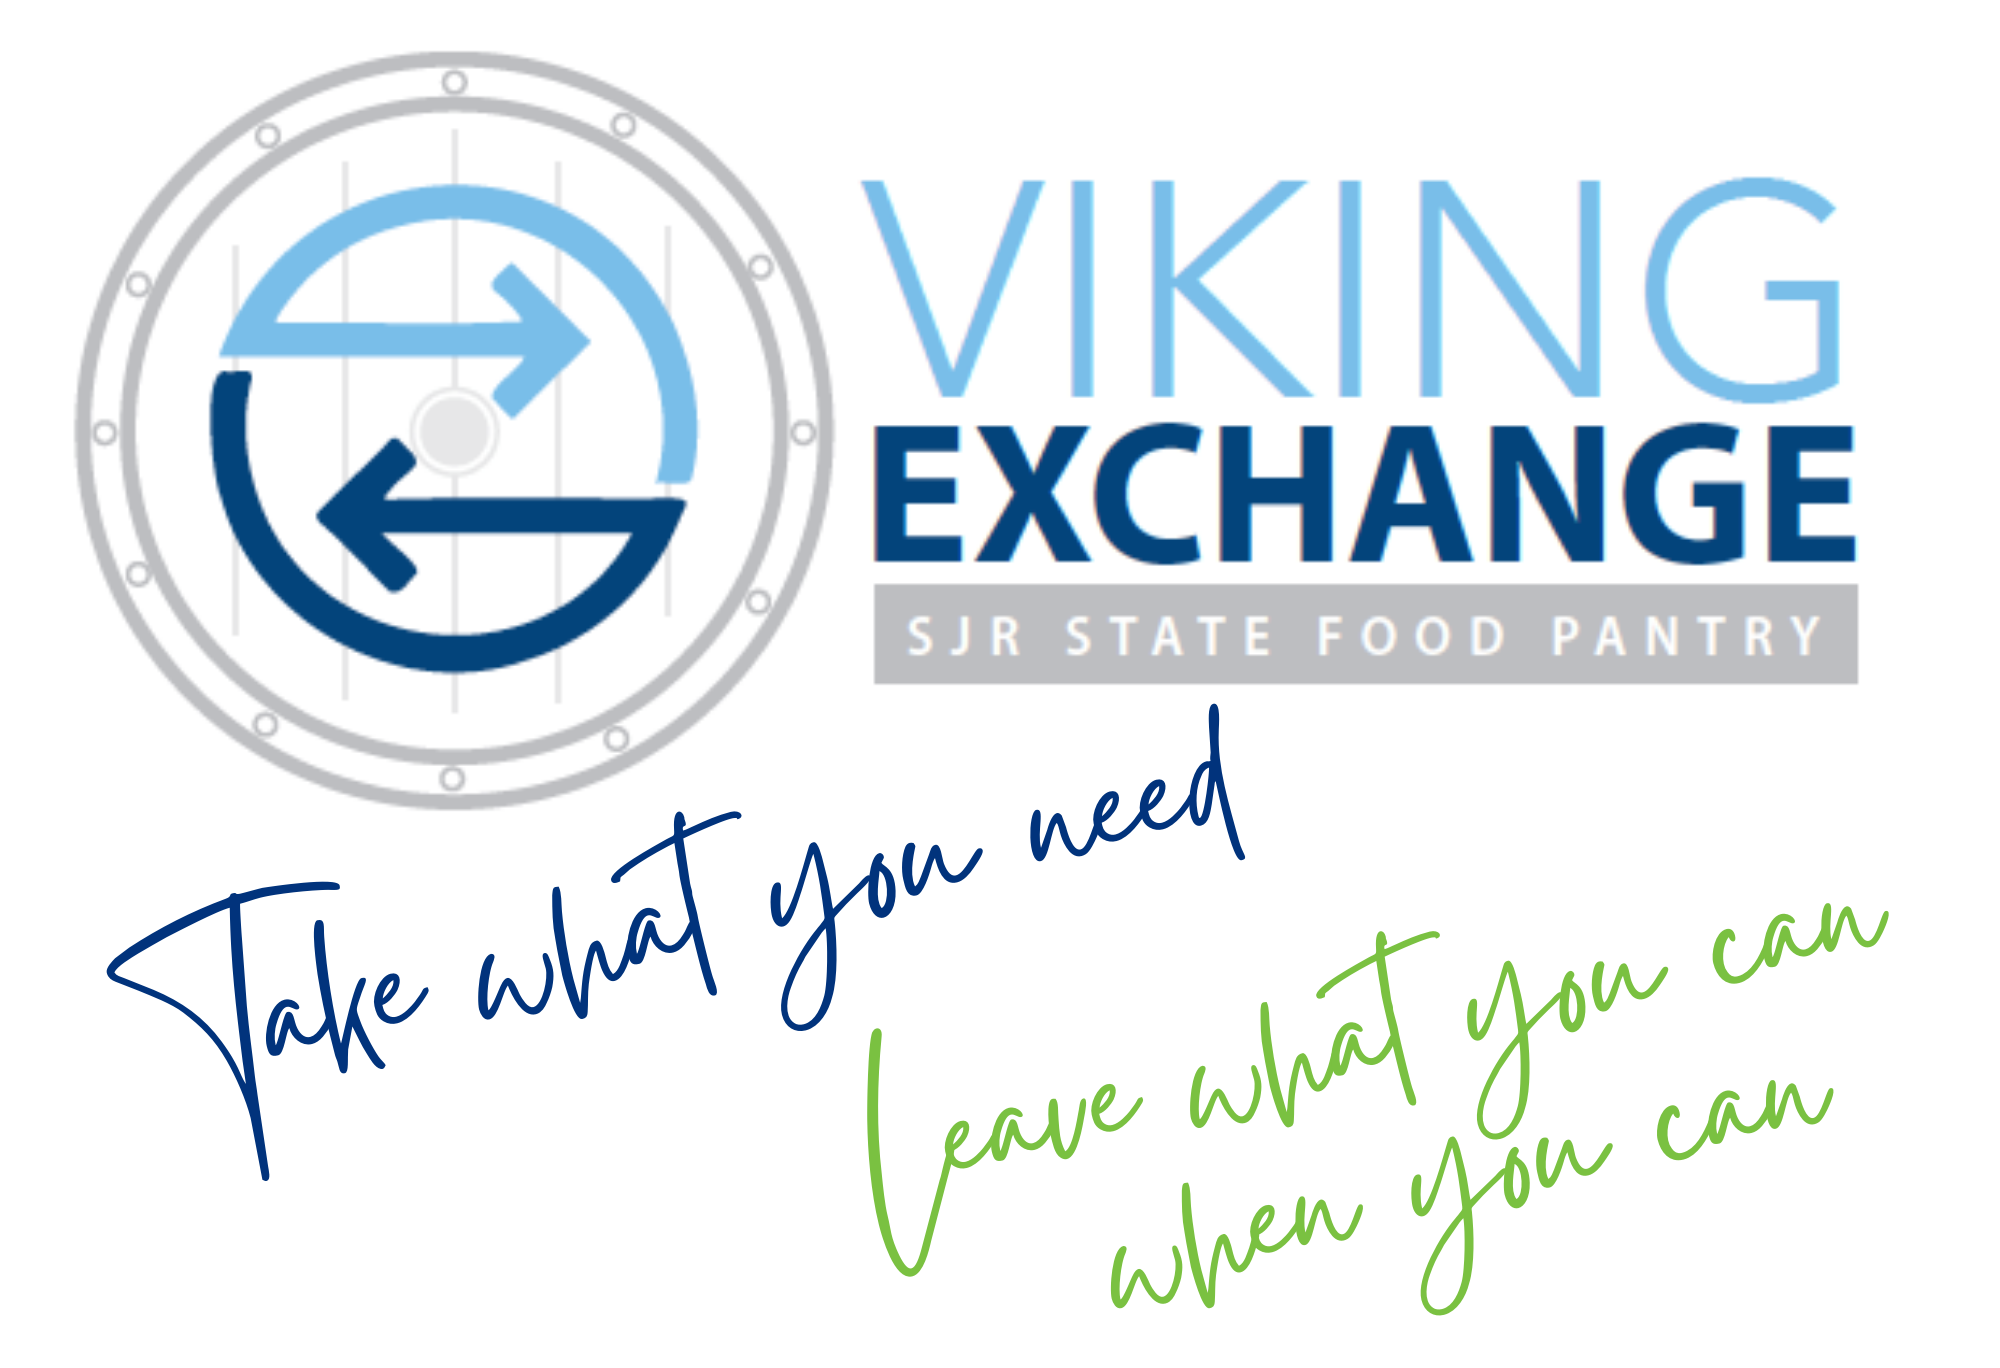 Viking Exchange - Take what you need, leave what you can when you can